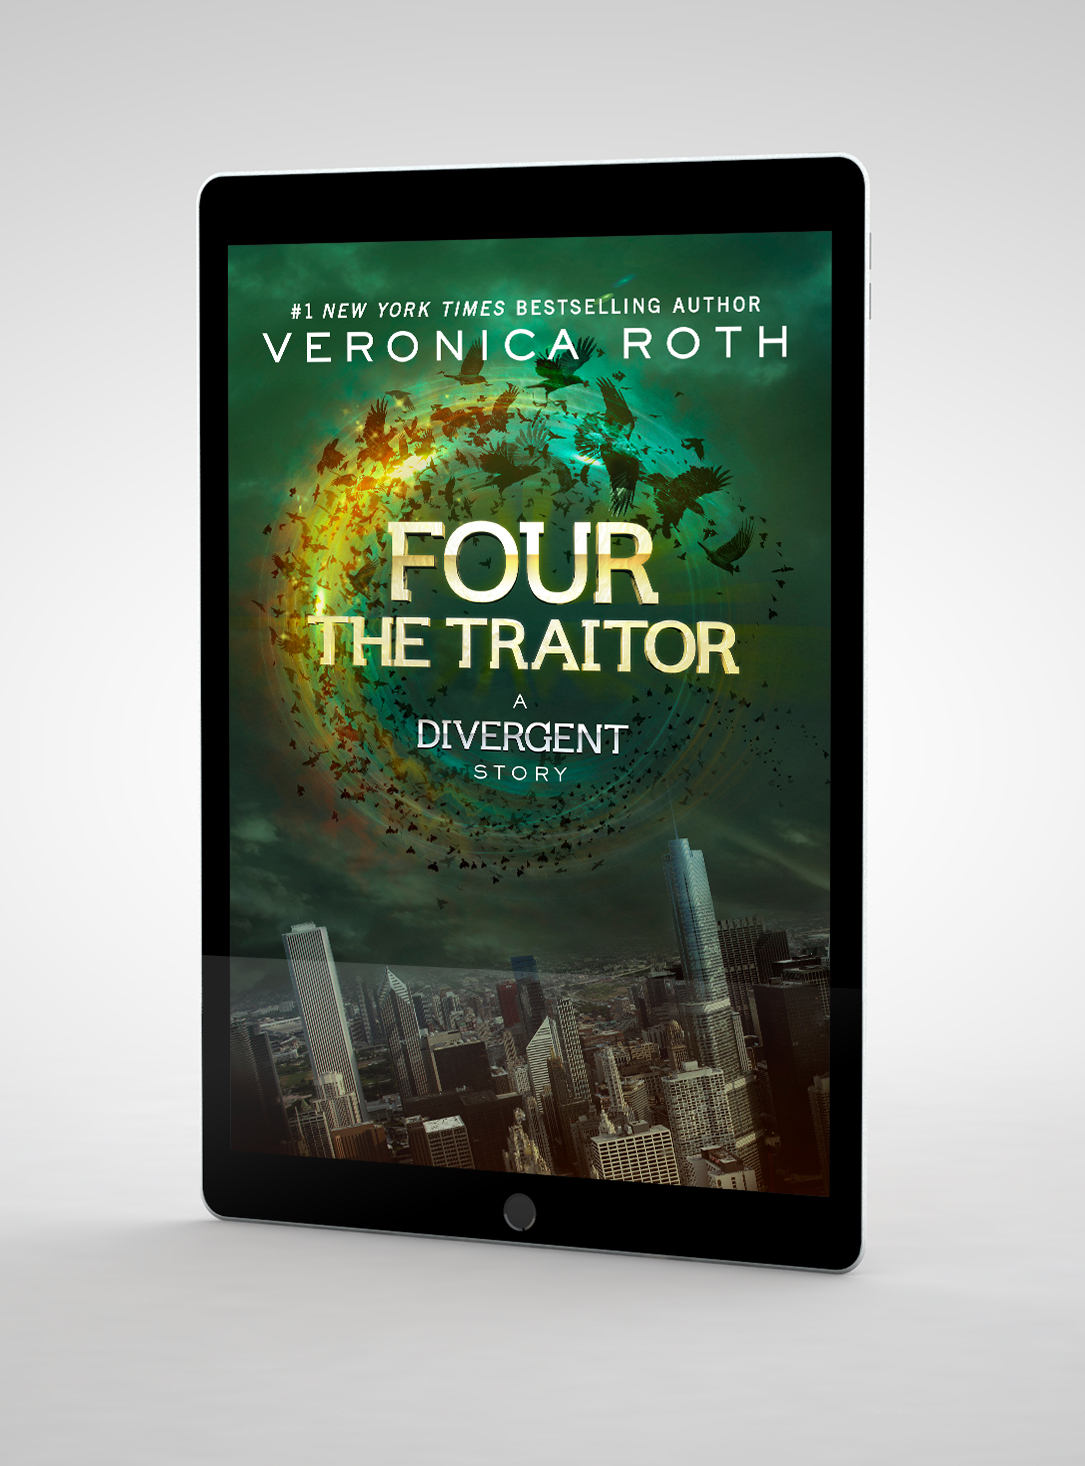 Four stories the traitor jdrift design prev next fandeluxe Ebook collections